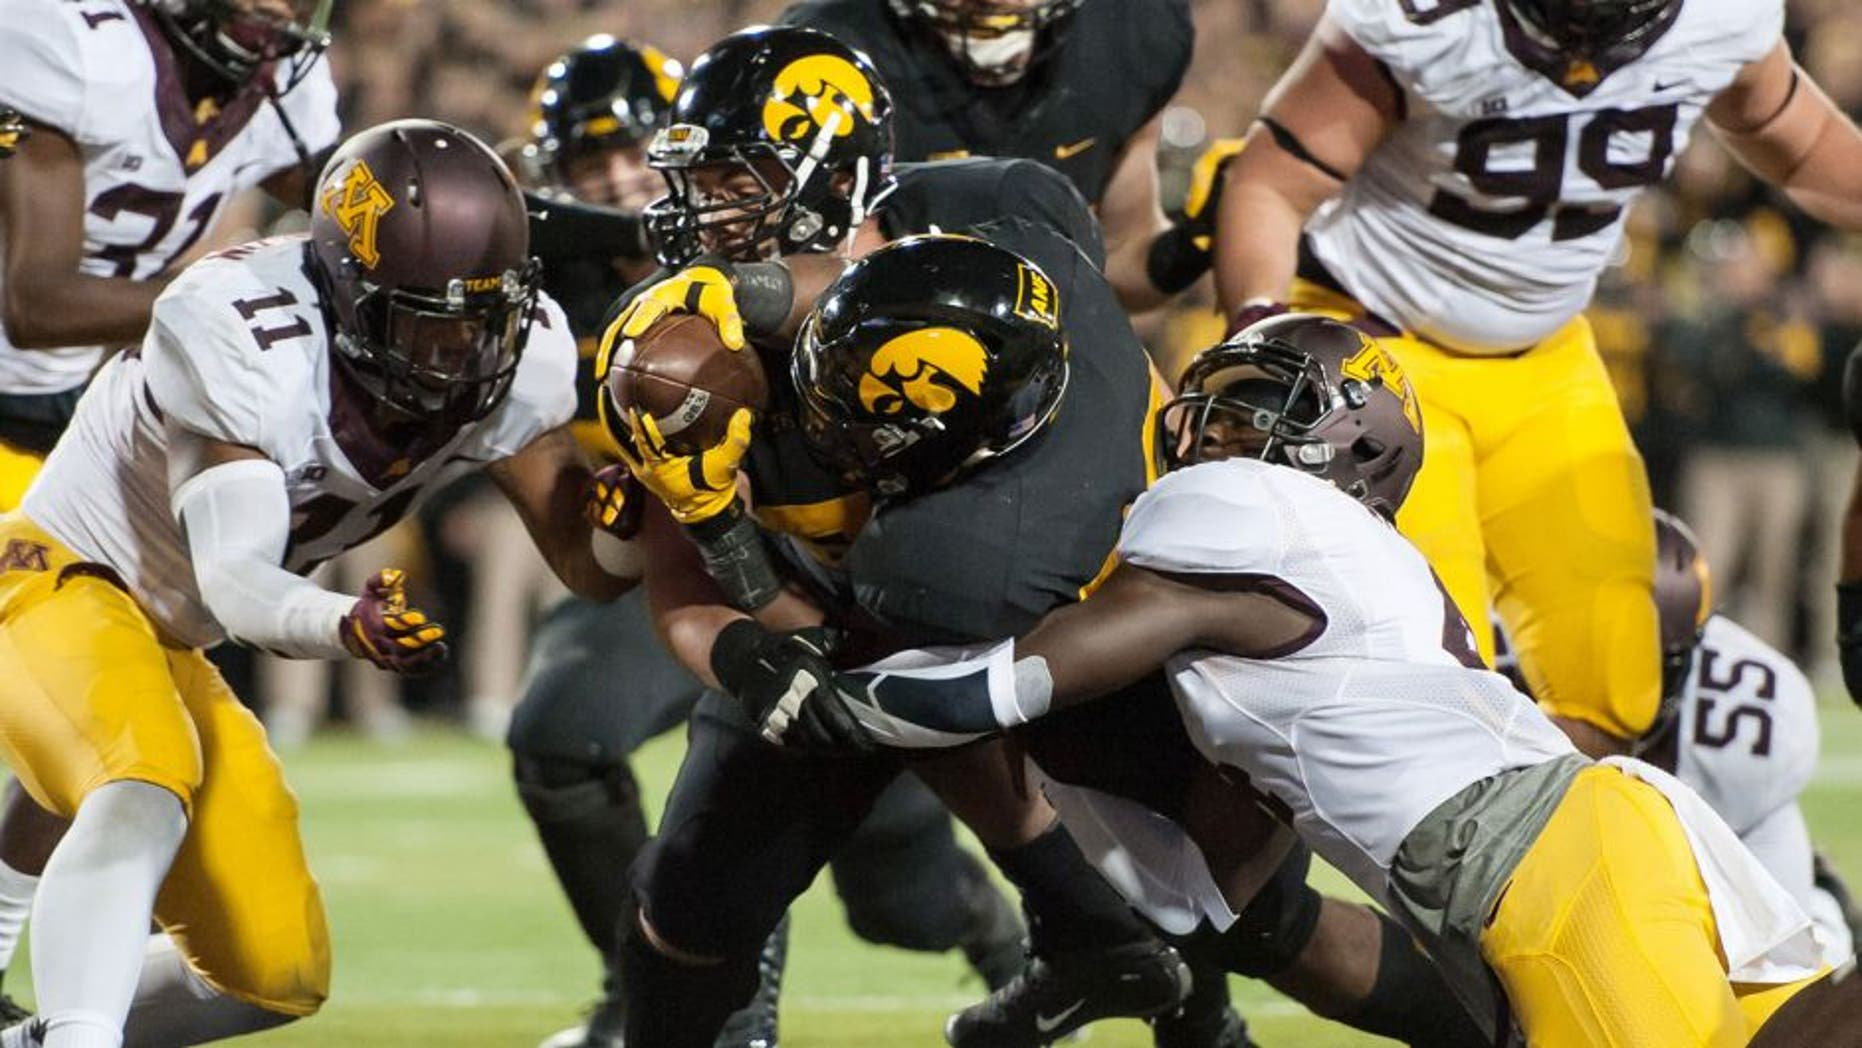 Nov 14, 2015; Iowa City, IA, USA; Iowa Hawkeyes running back LeShun Daniels Jr. (29) extends for a touchdown during the second half against the Minnesota Golden Gophers at Kinnick Stadium. Mandatory Credit: Jeffrey Becker-USA TODAY Sports